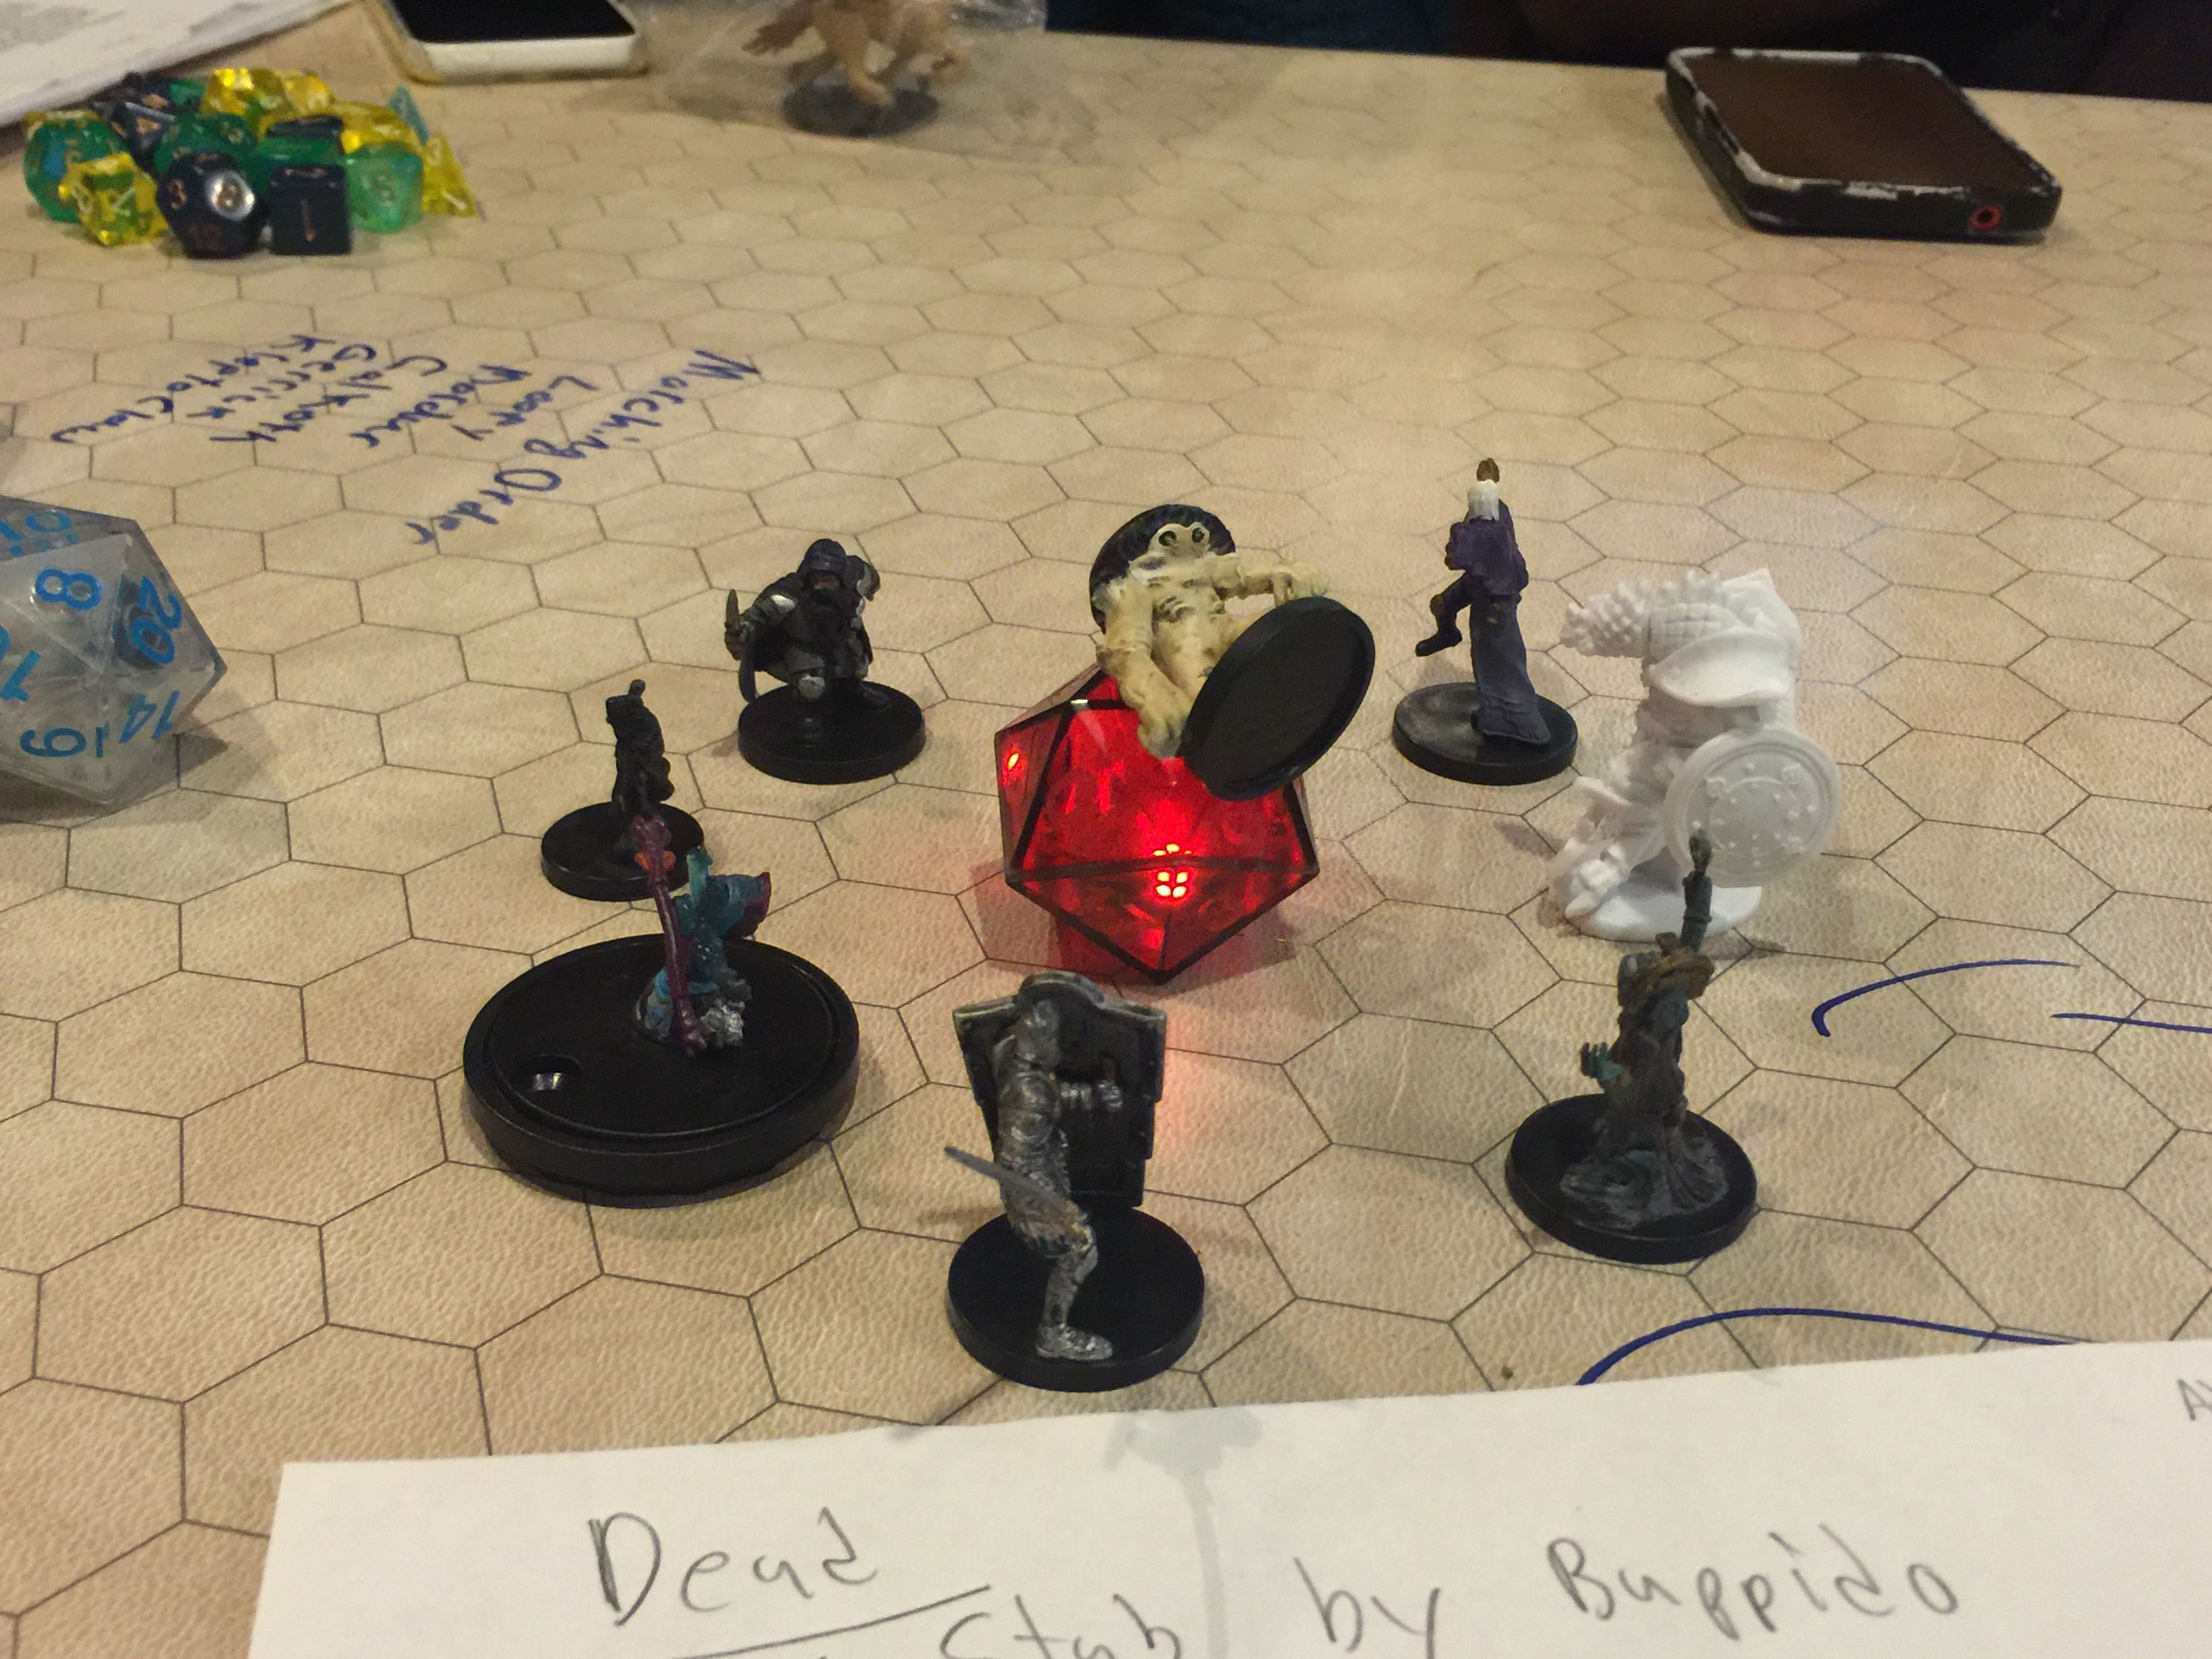 Photos - The Seattle Dungeons & Dragons and RPG Meetup Group